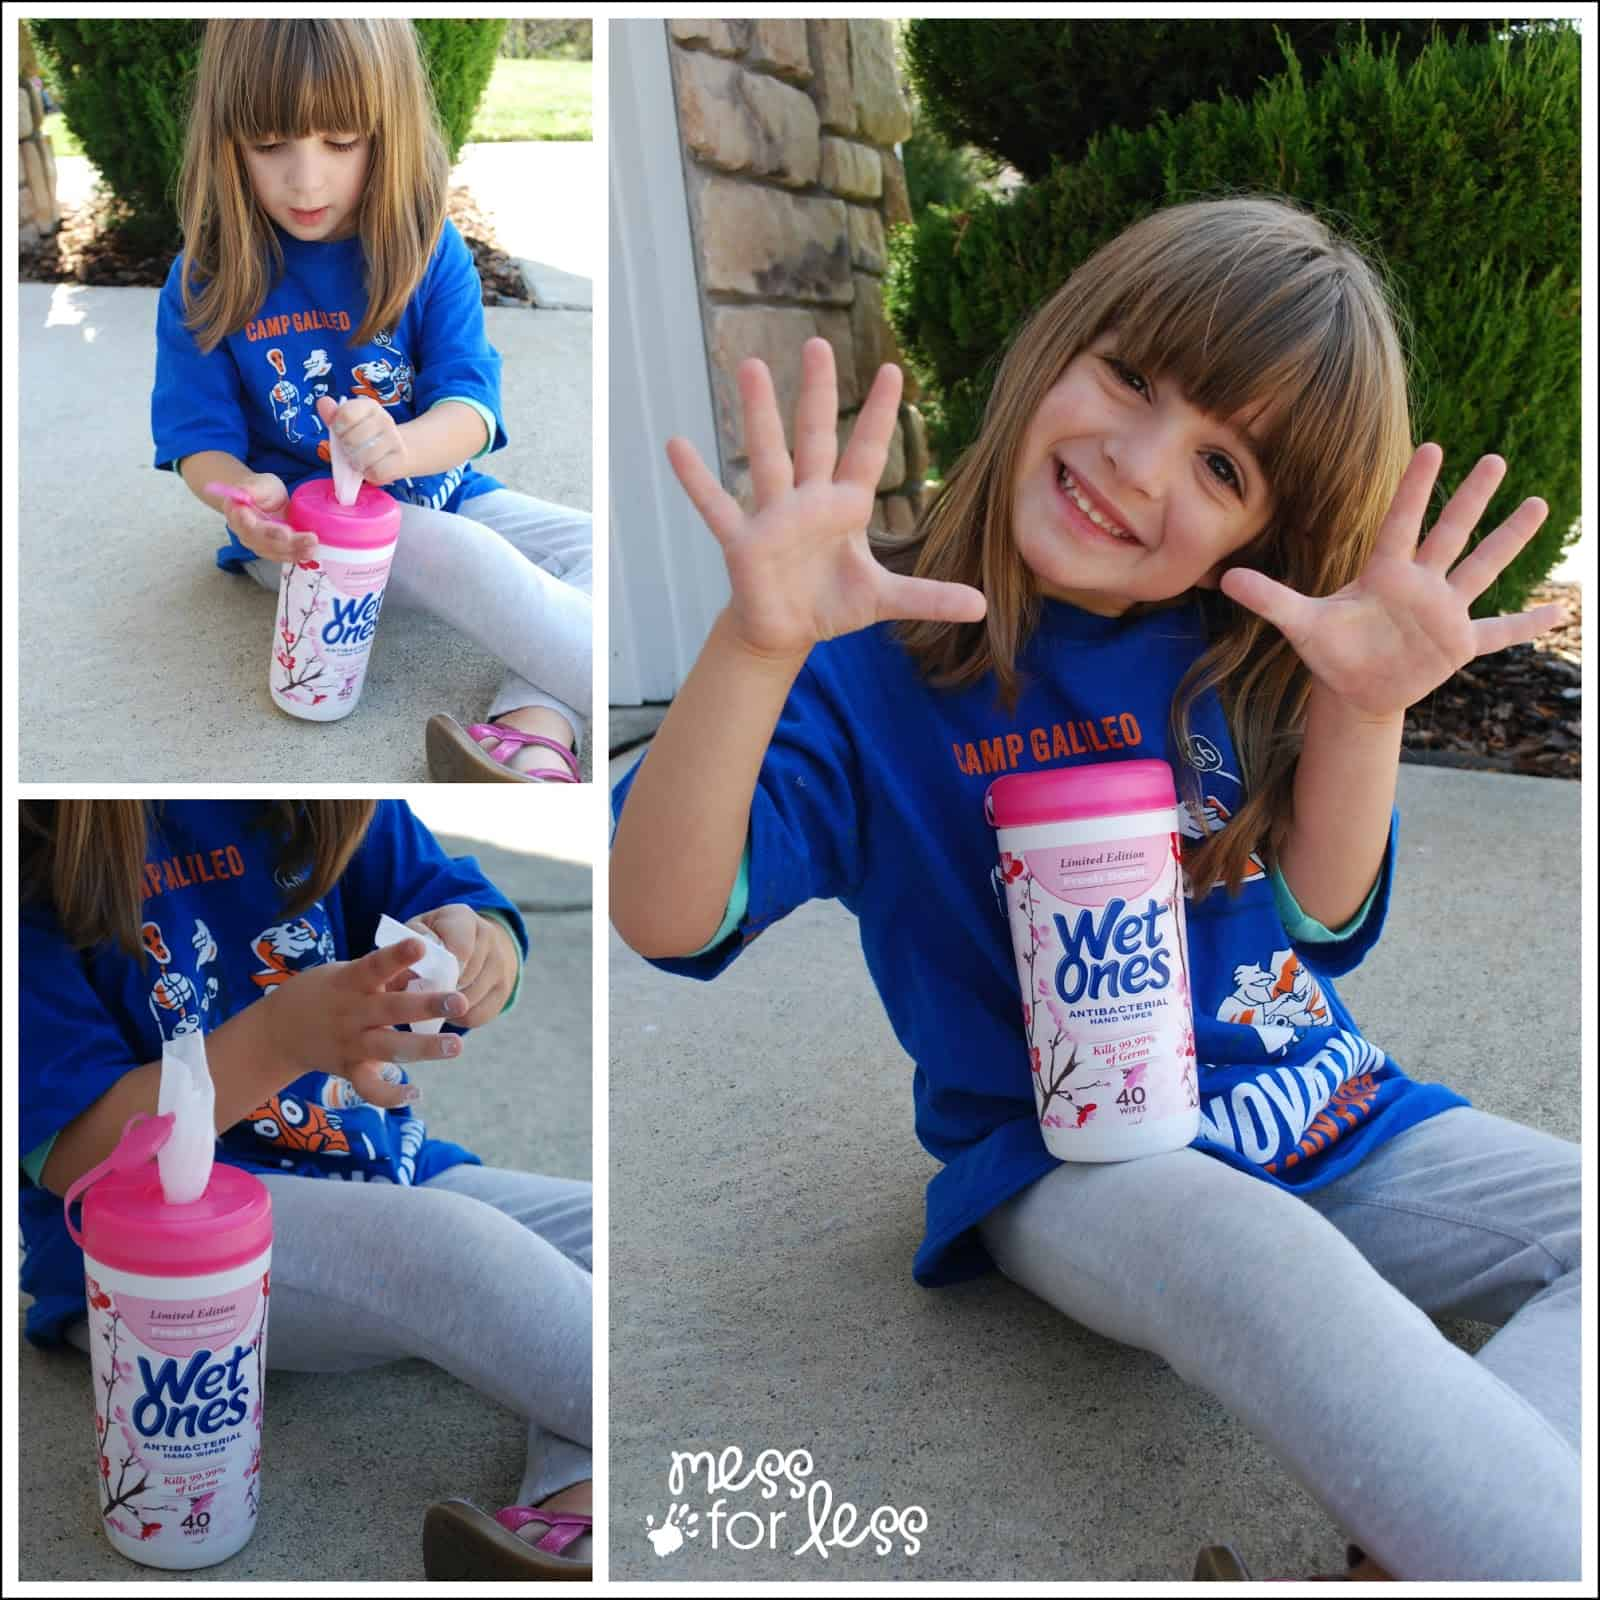 Cleaning up with Wet Ones #sponsored #wetones